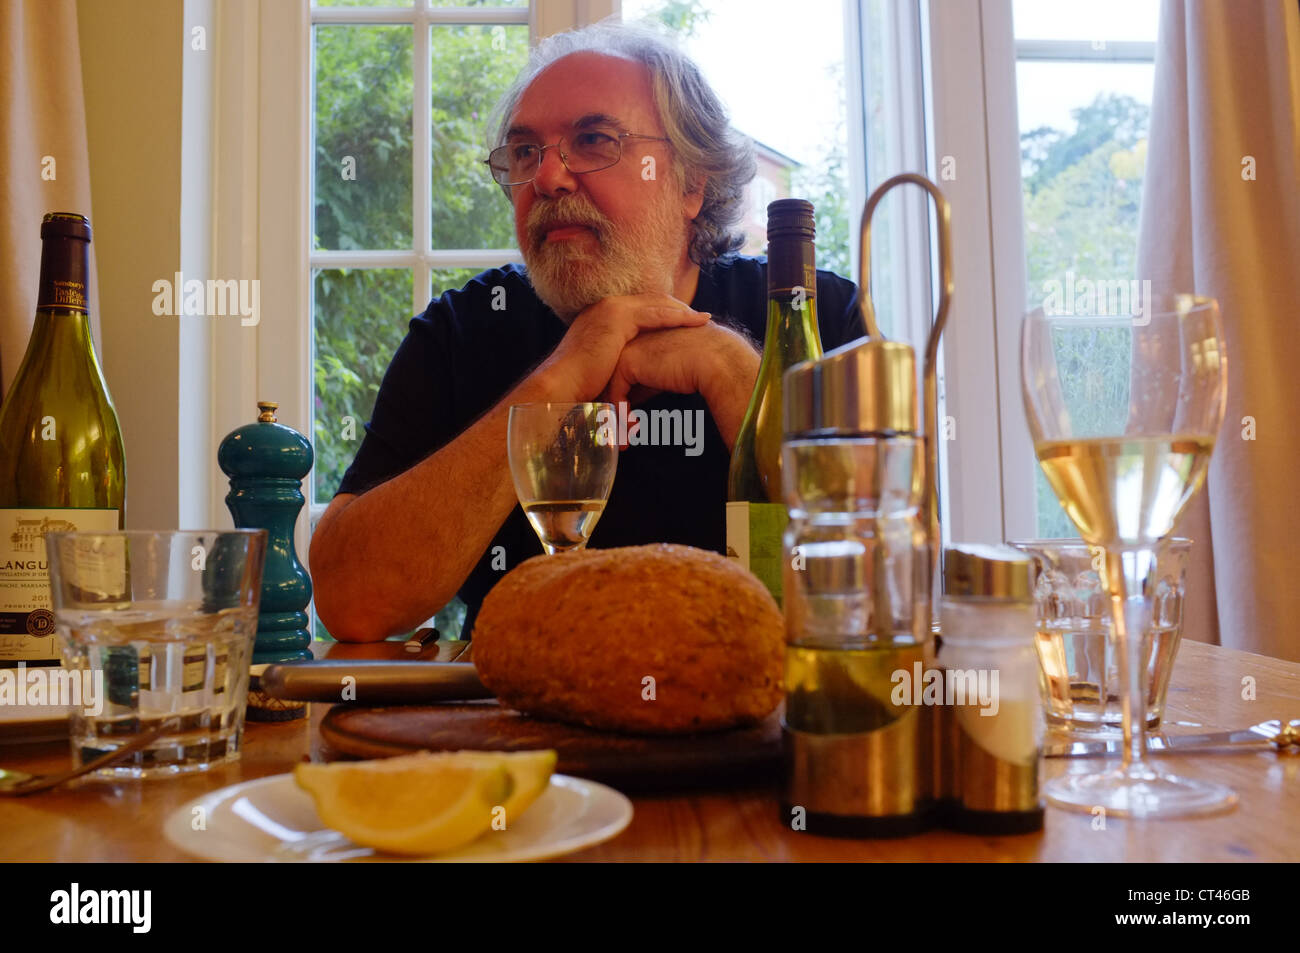 A bon viveur seated at a dining table - Stock Image